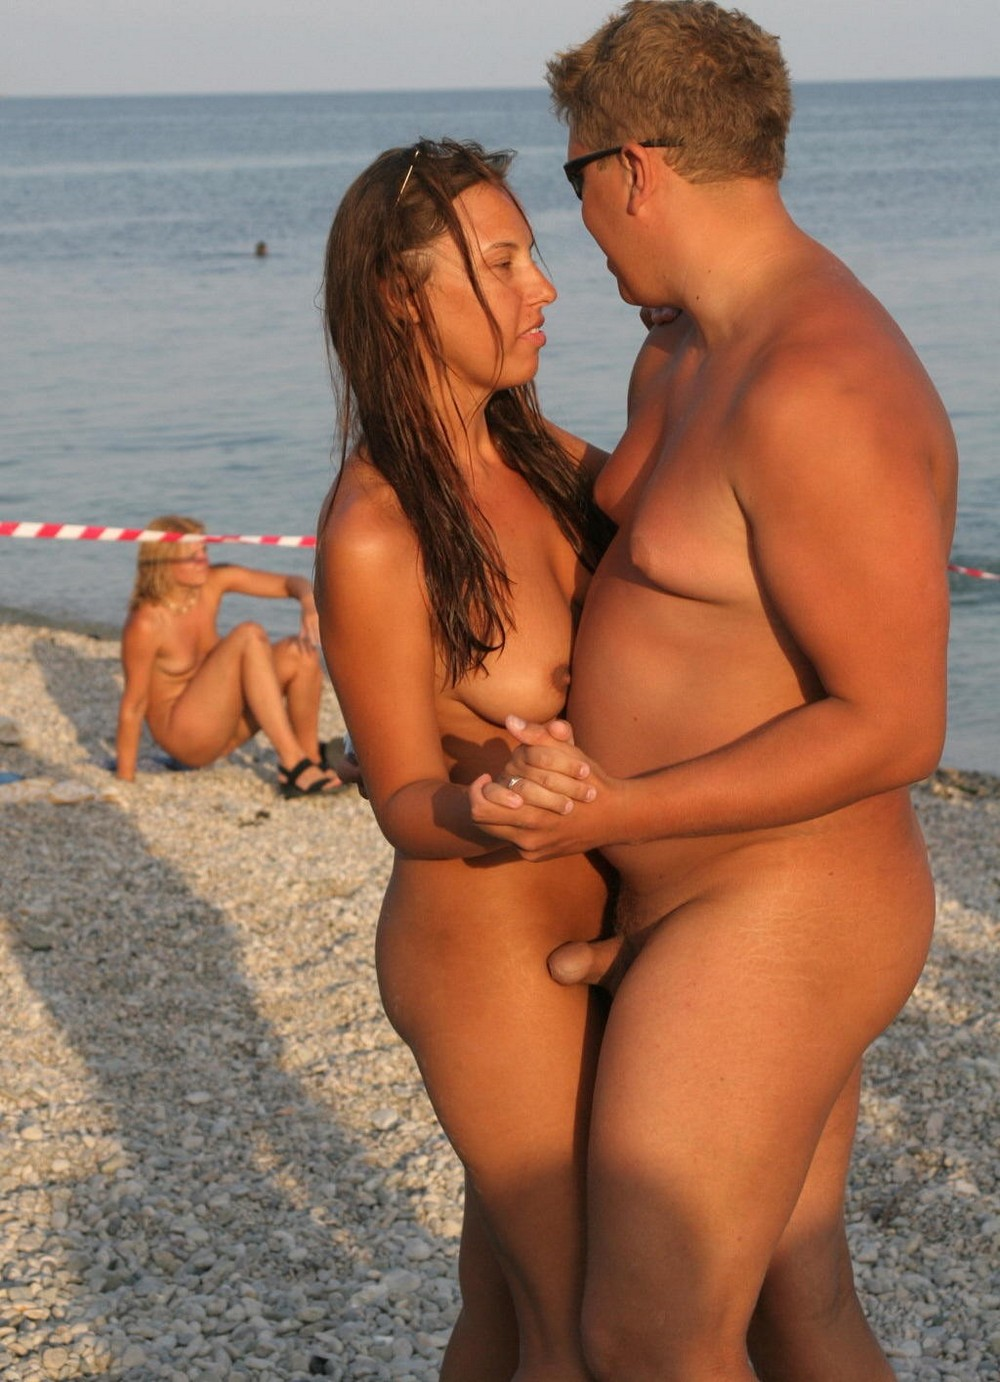 Hot nudist couples spy cam at the beach